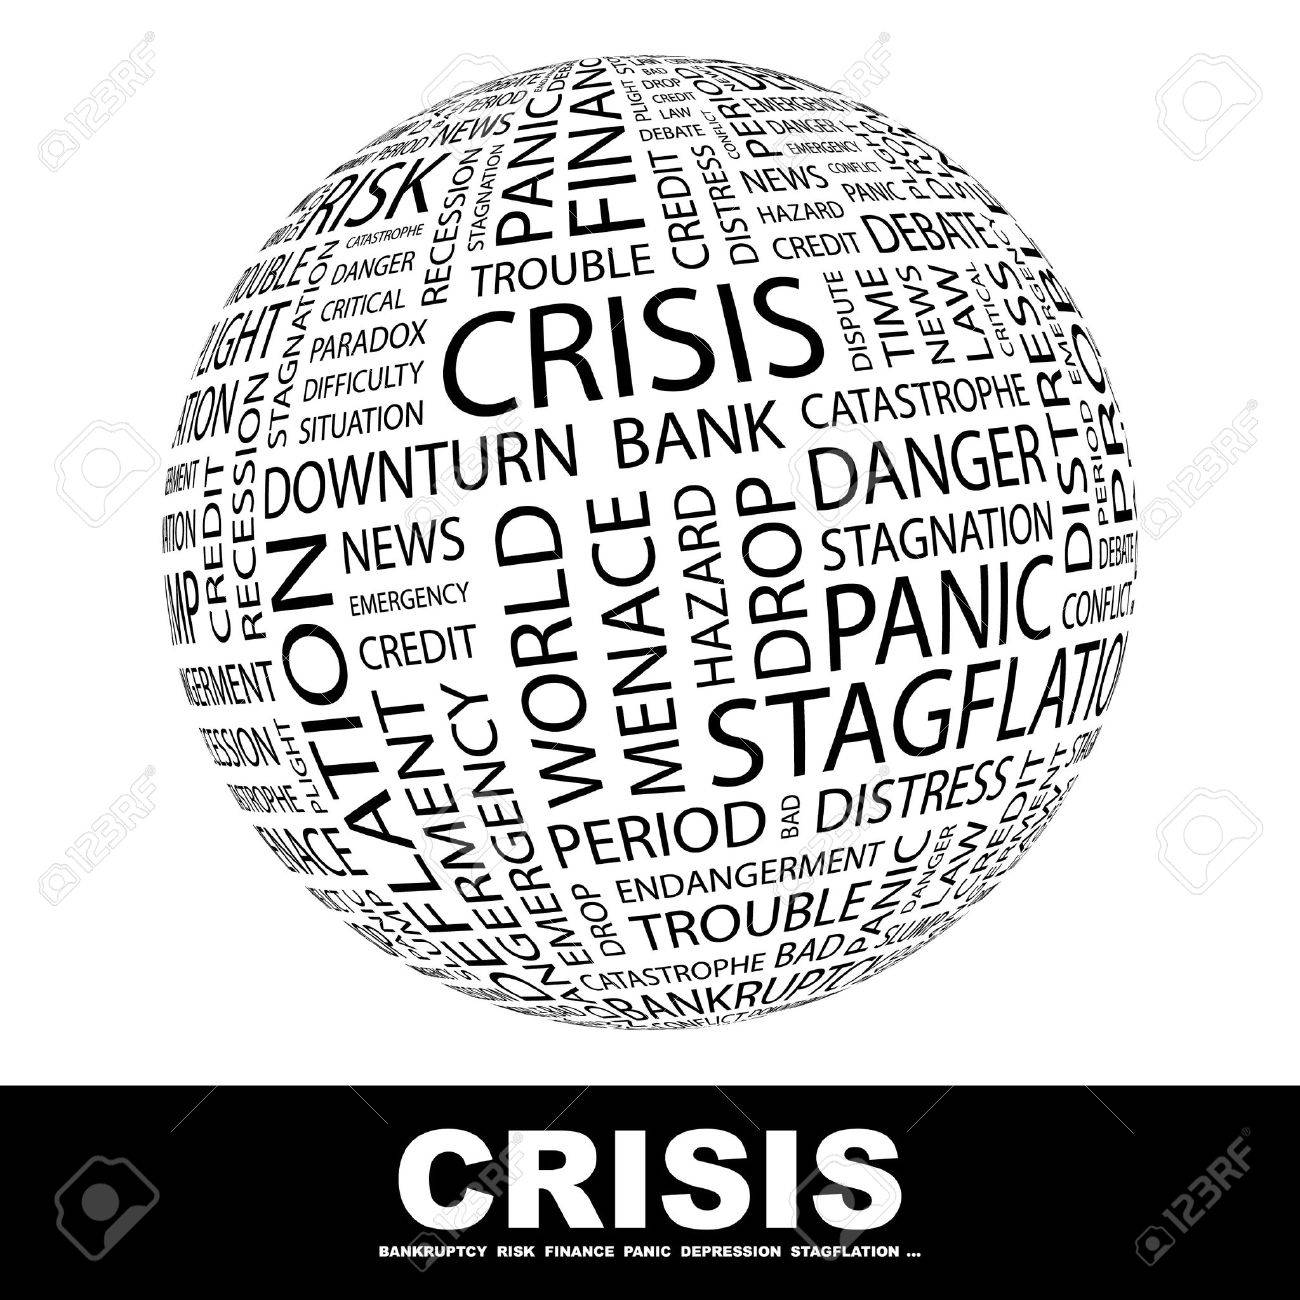 CRISIS. Globe with different association terms. Wordcloud vector illustration. Stock Vector - 9129618